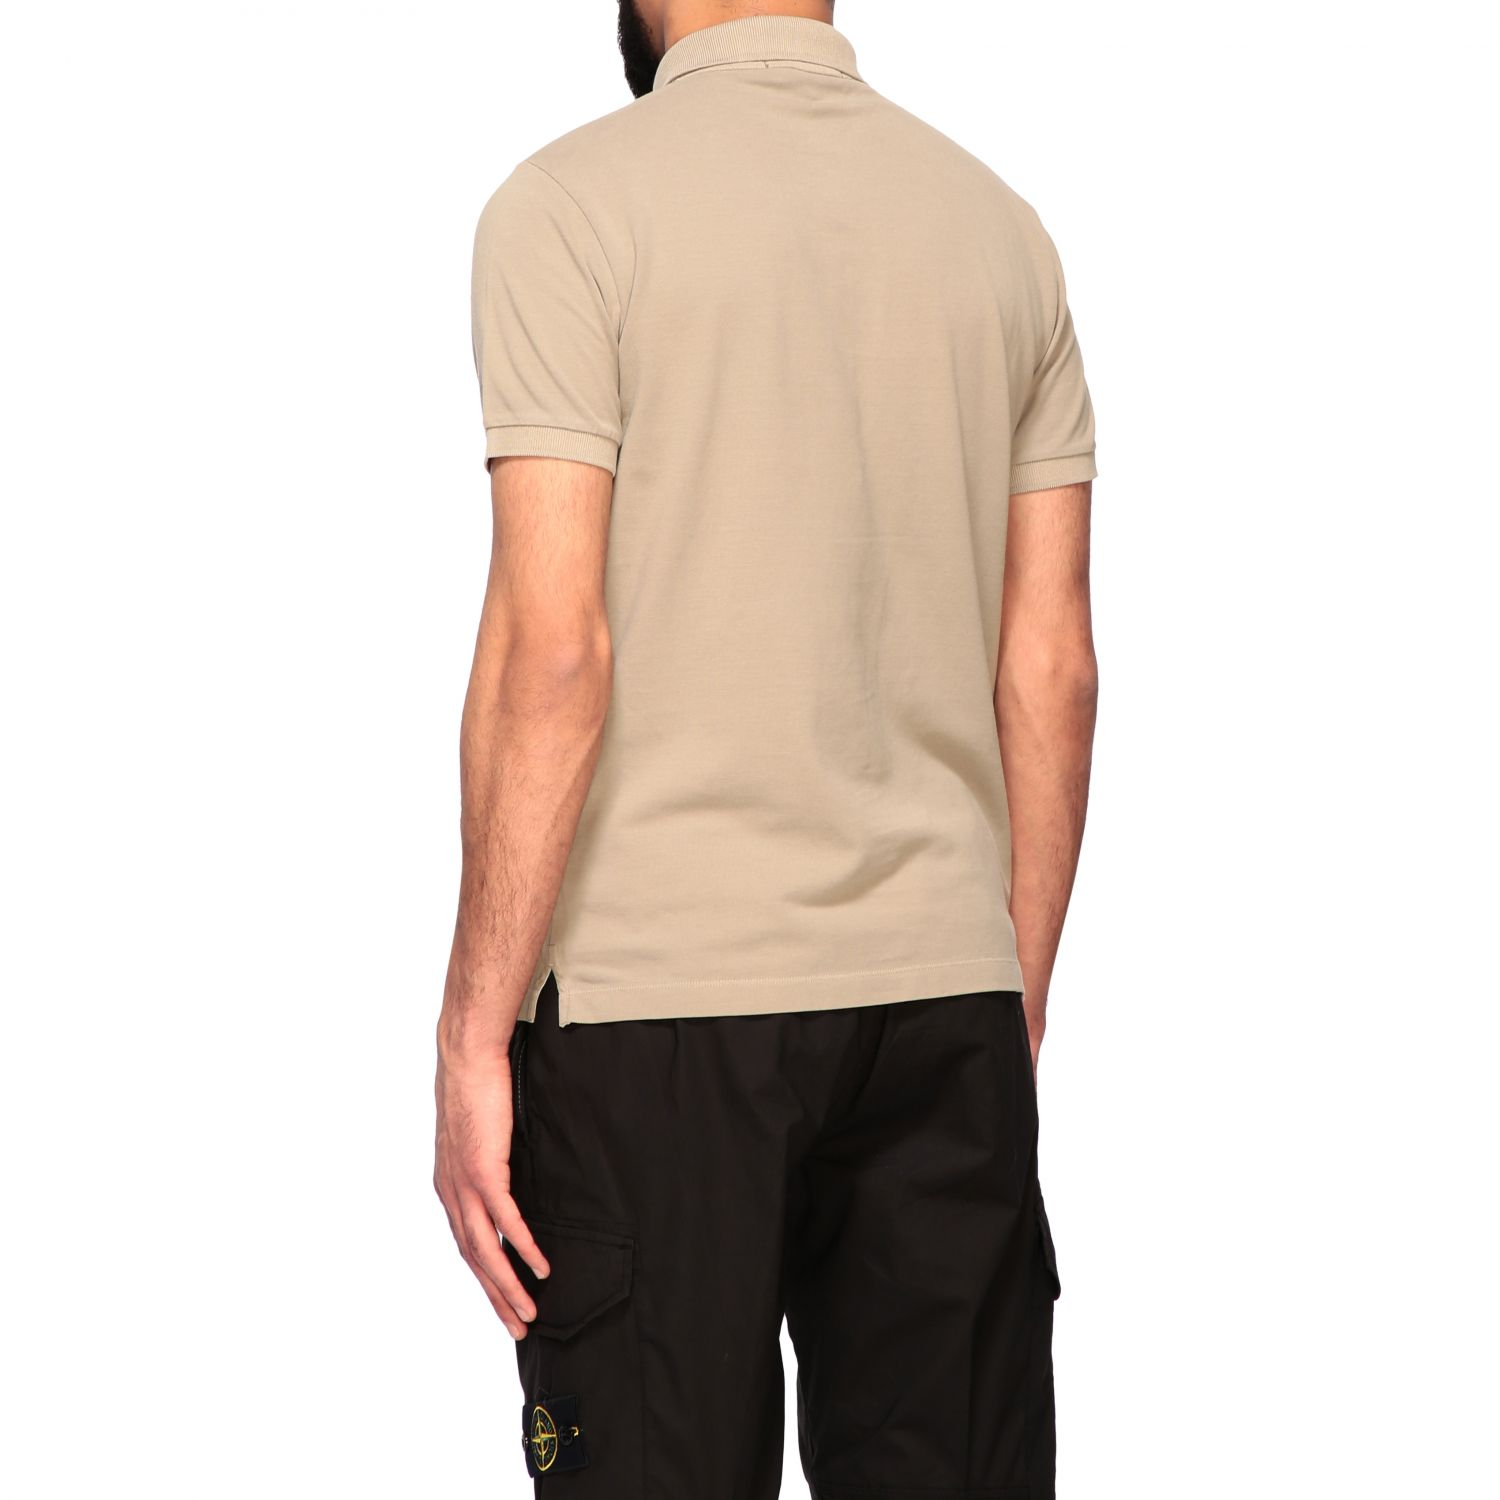 Stone Island short-sleeved polo shirt burnt 3